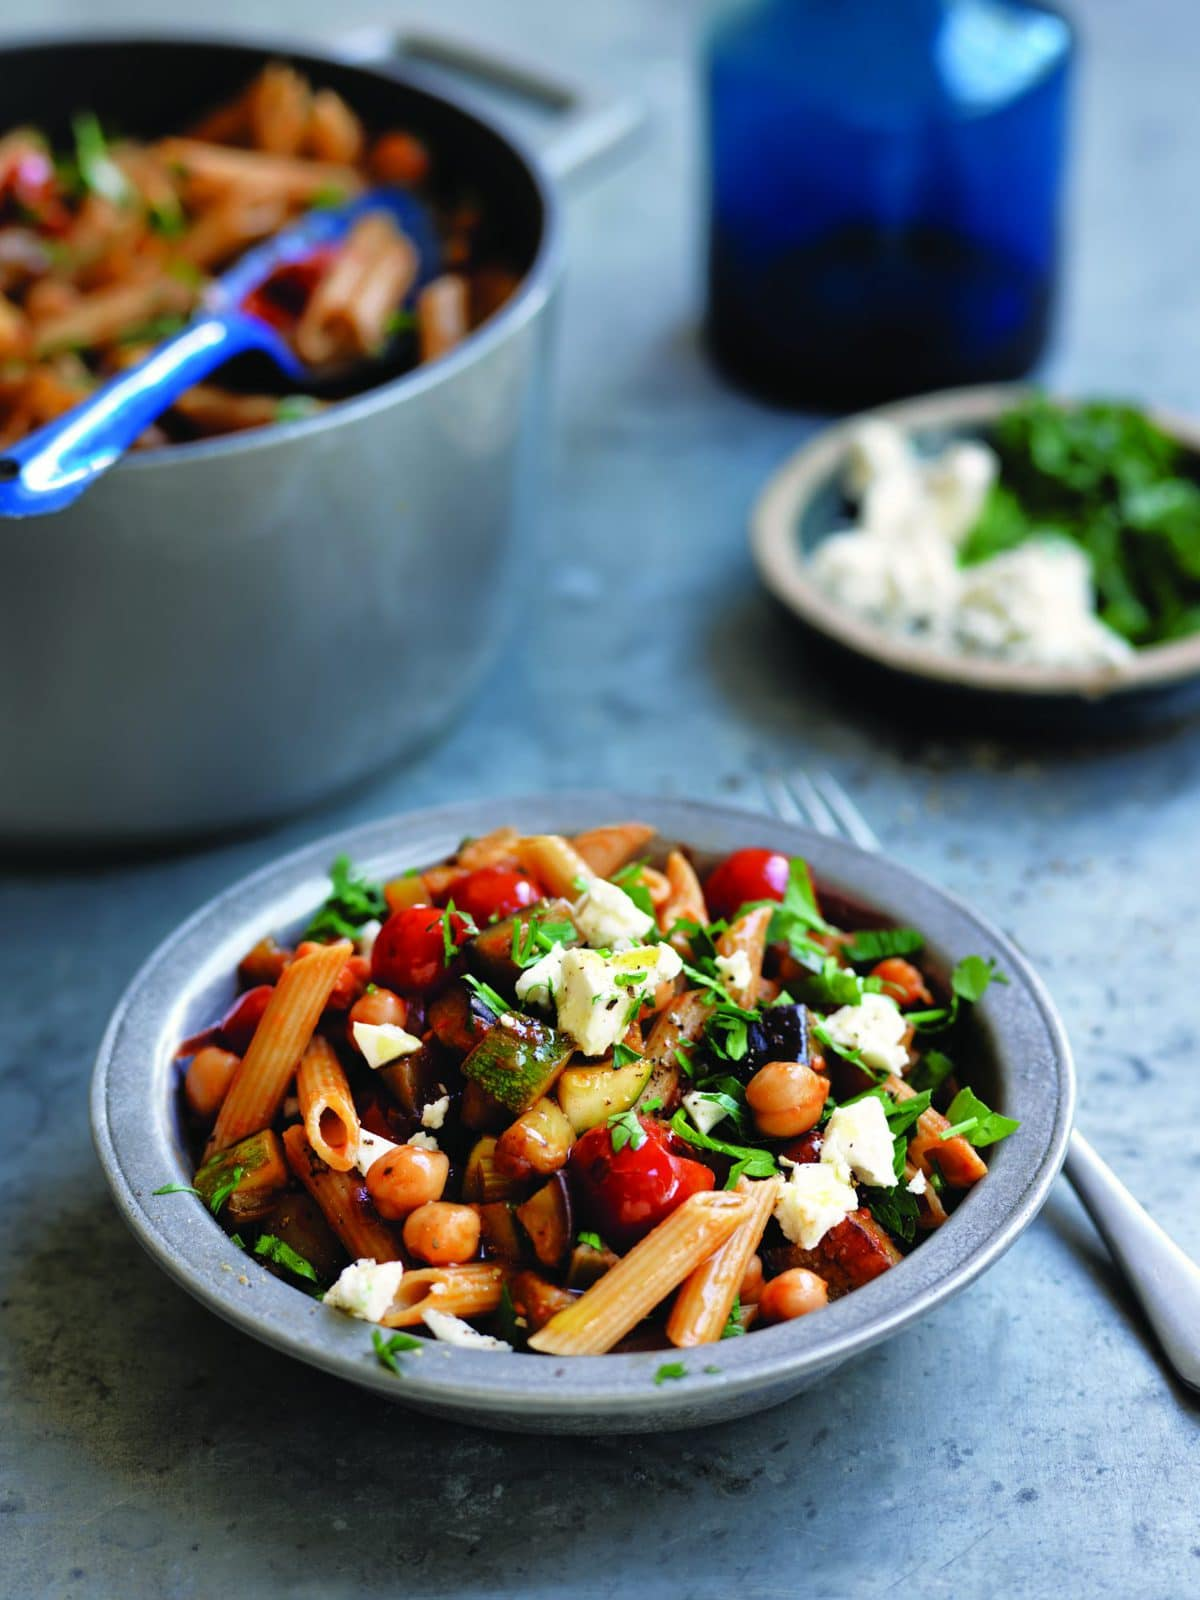 Pasta with eggplant, tomato, chickpeas and feta